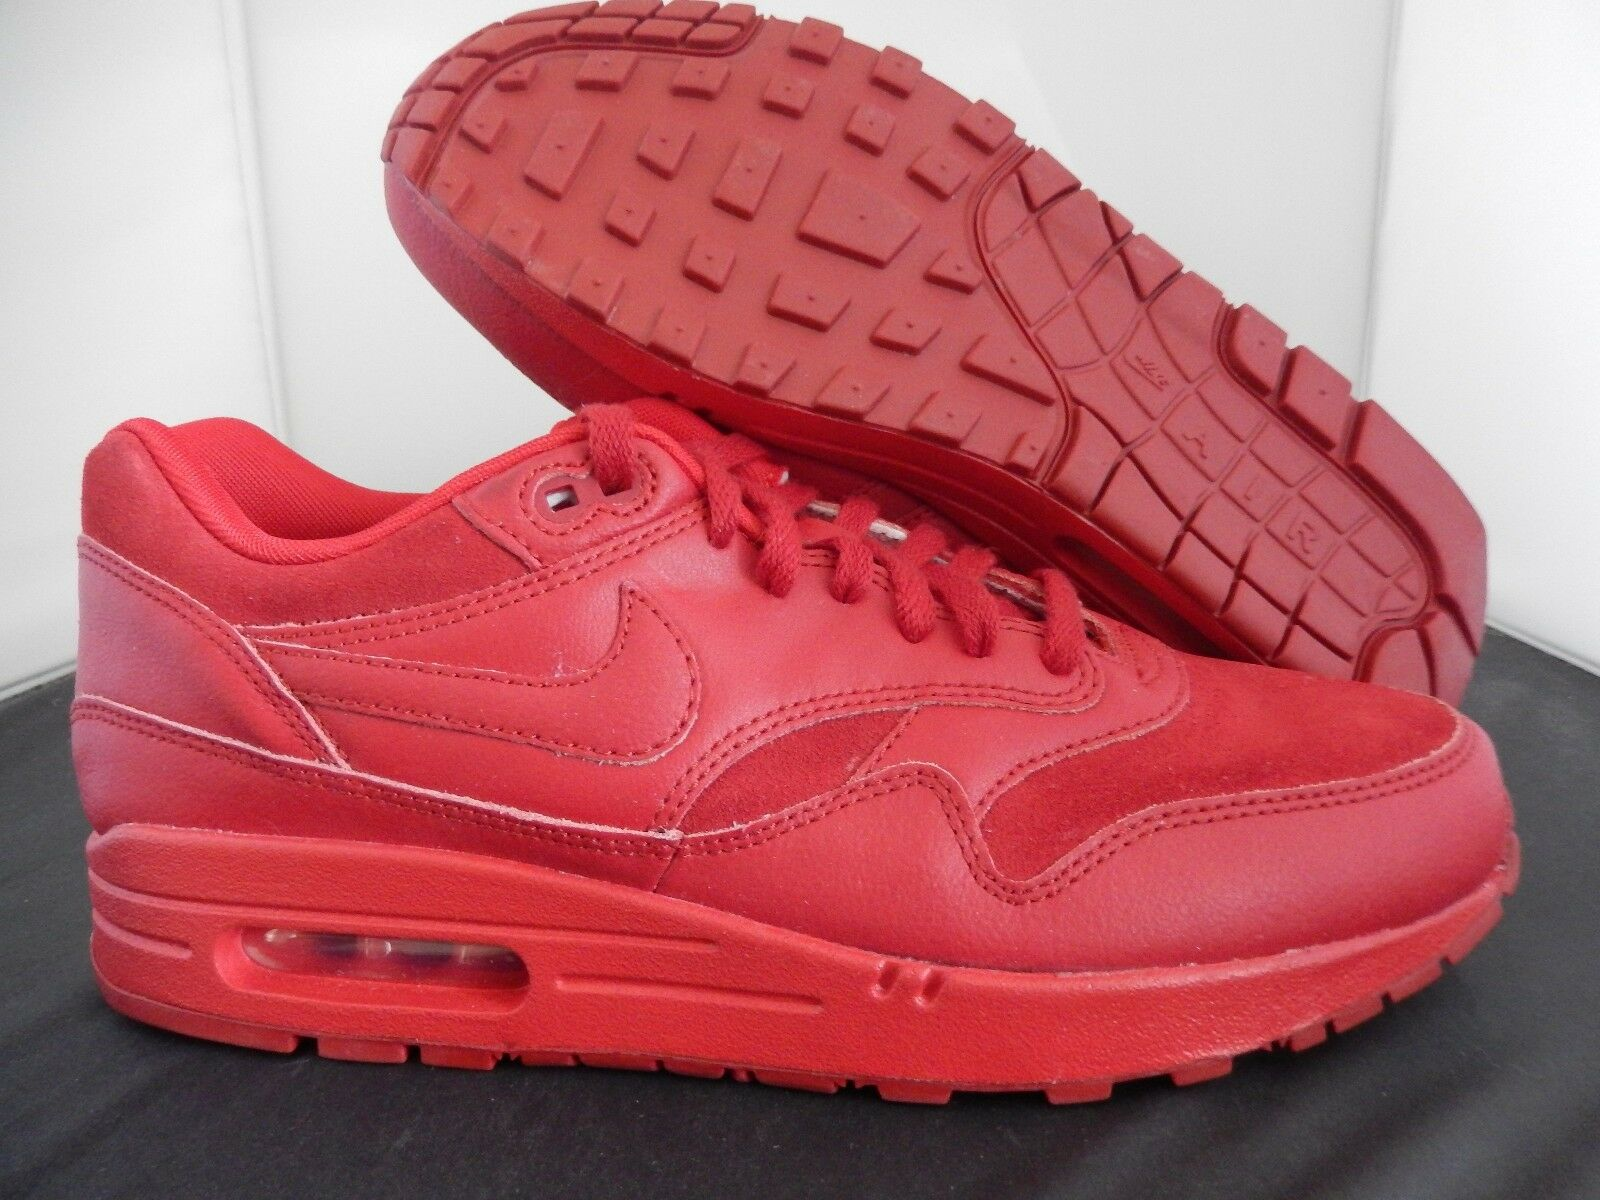 NIKE AIR MAX 1 iD ALL RED SZ 9.5 RED OCTOBER RARE